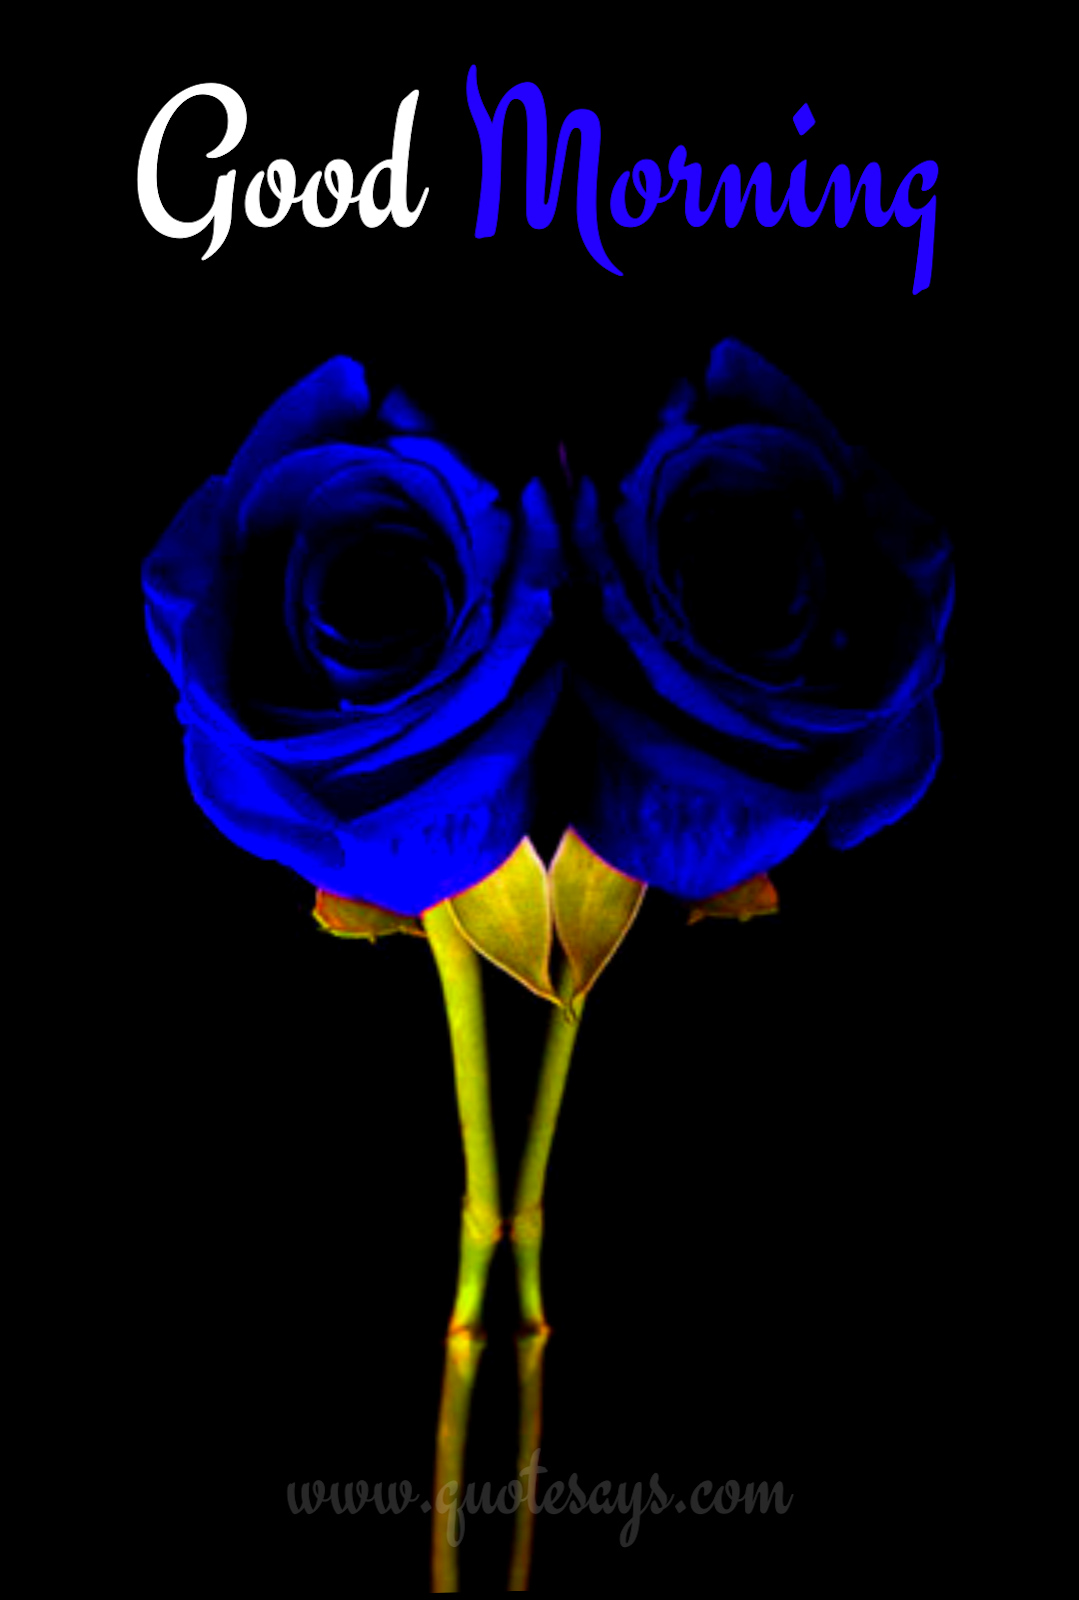 Good Morning Two Blue Roses